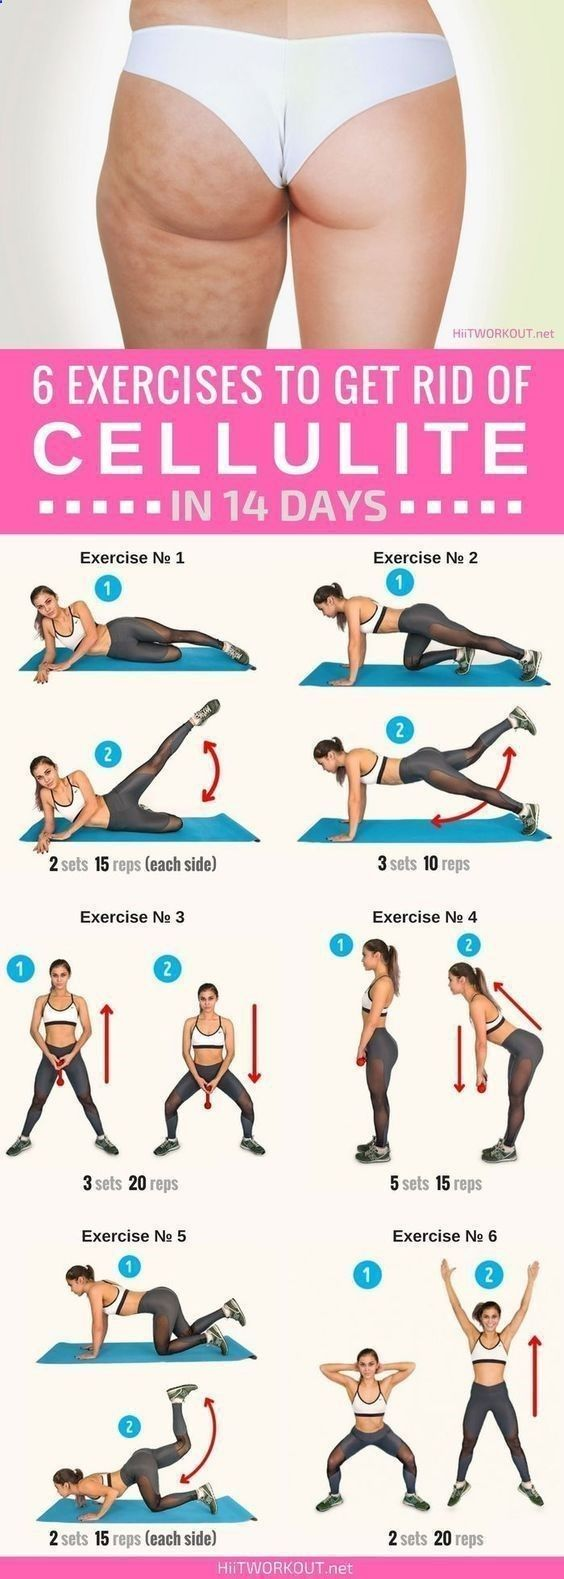 Get rid of cellulite #workout #cellulite by leila